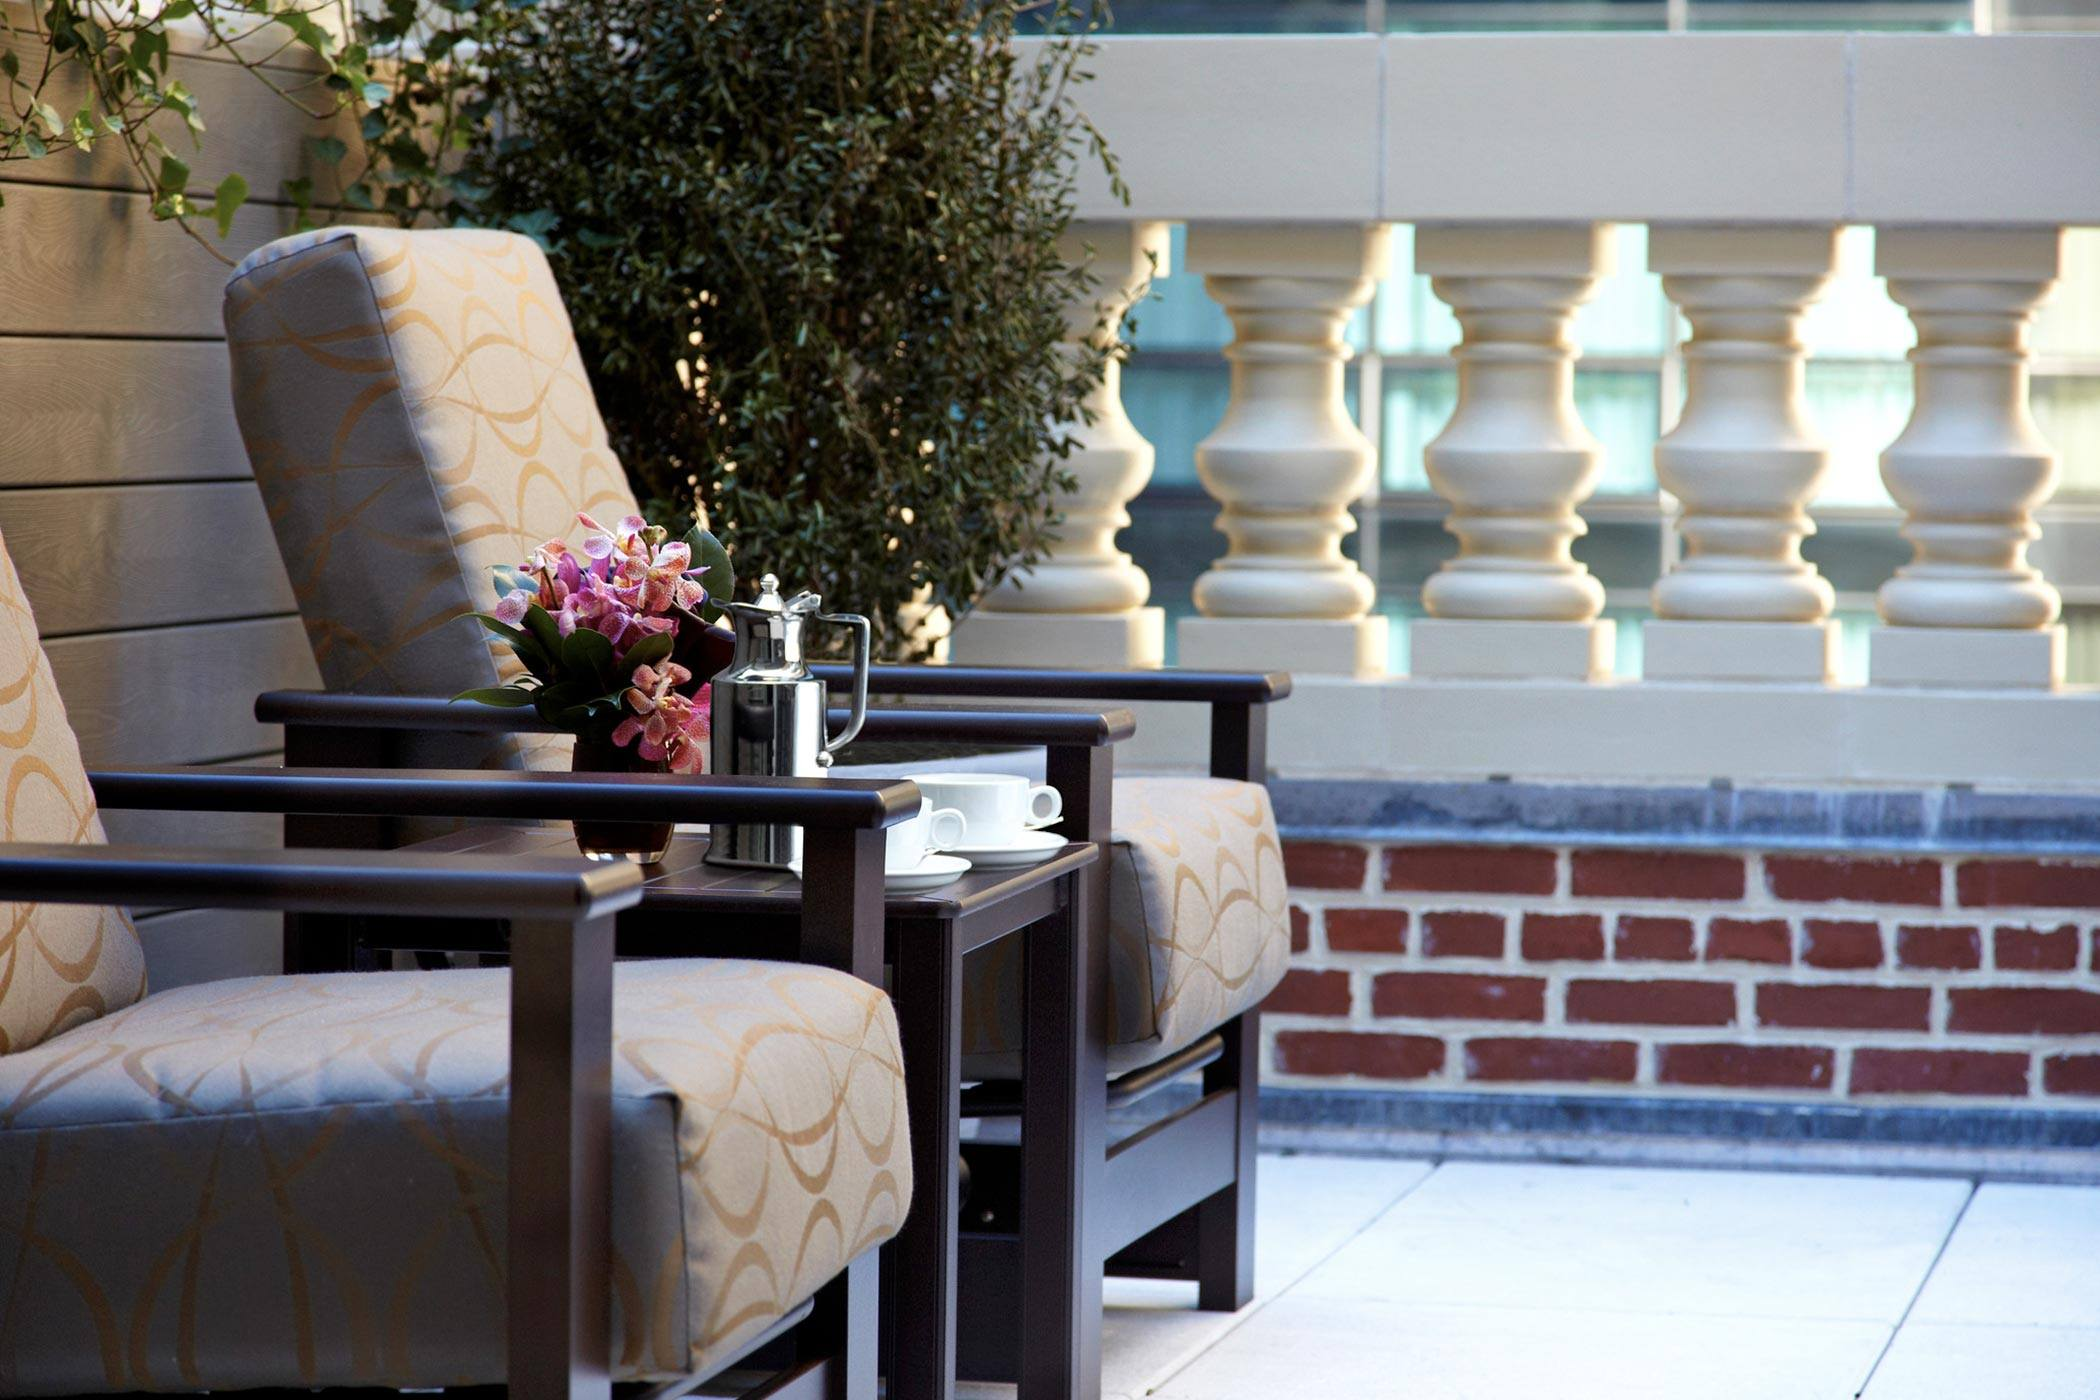 Two chairs on a terrace with flowers and cups